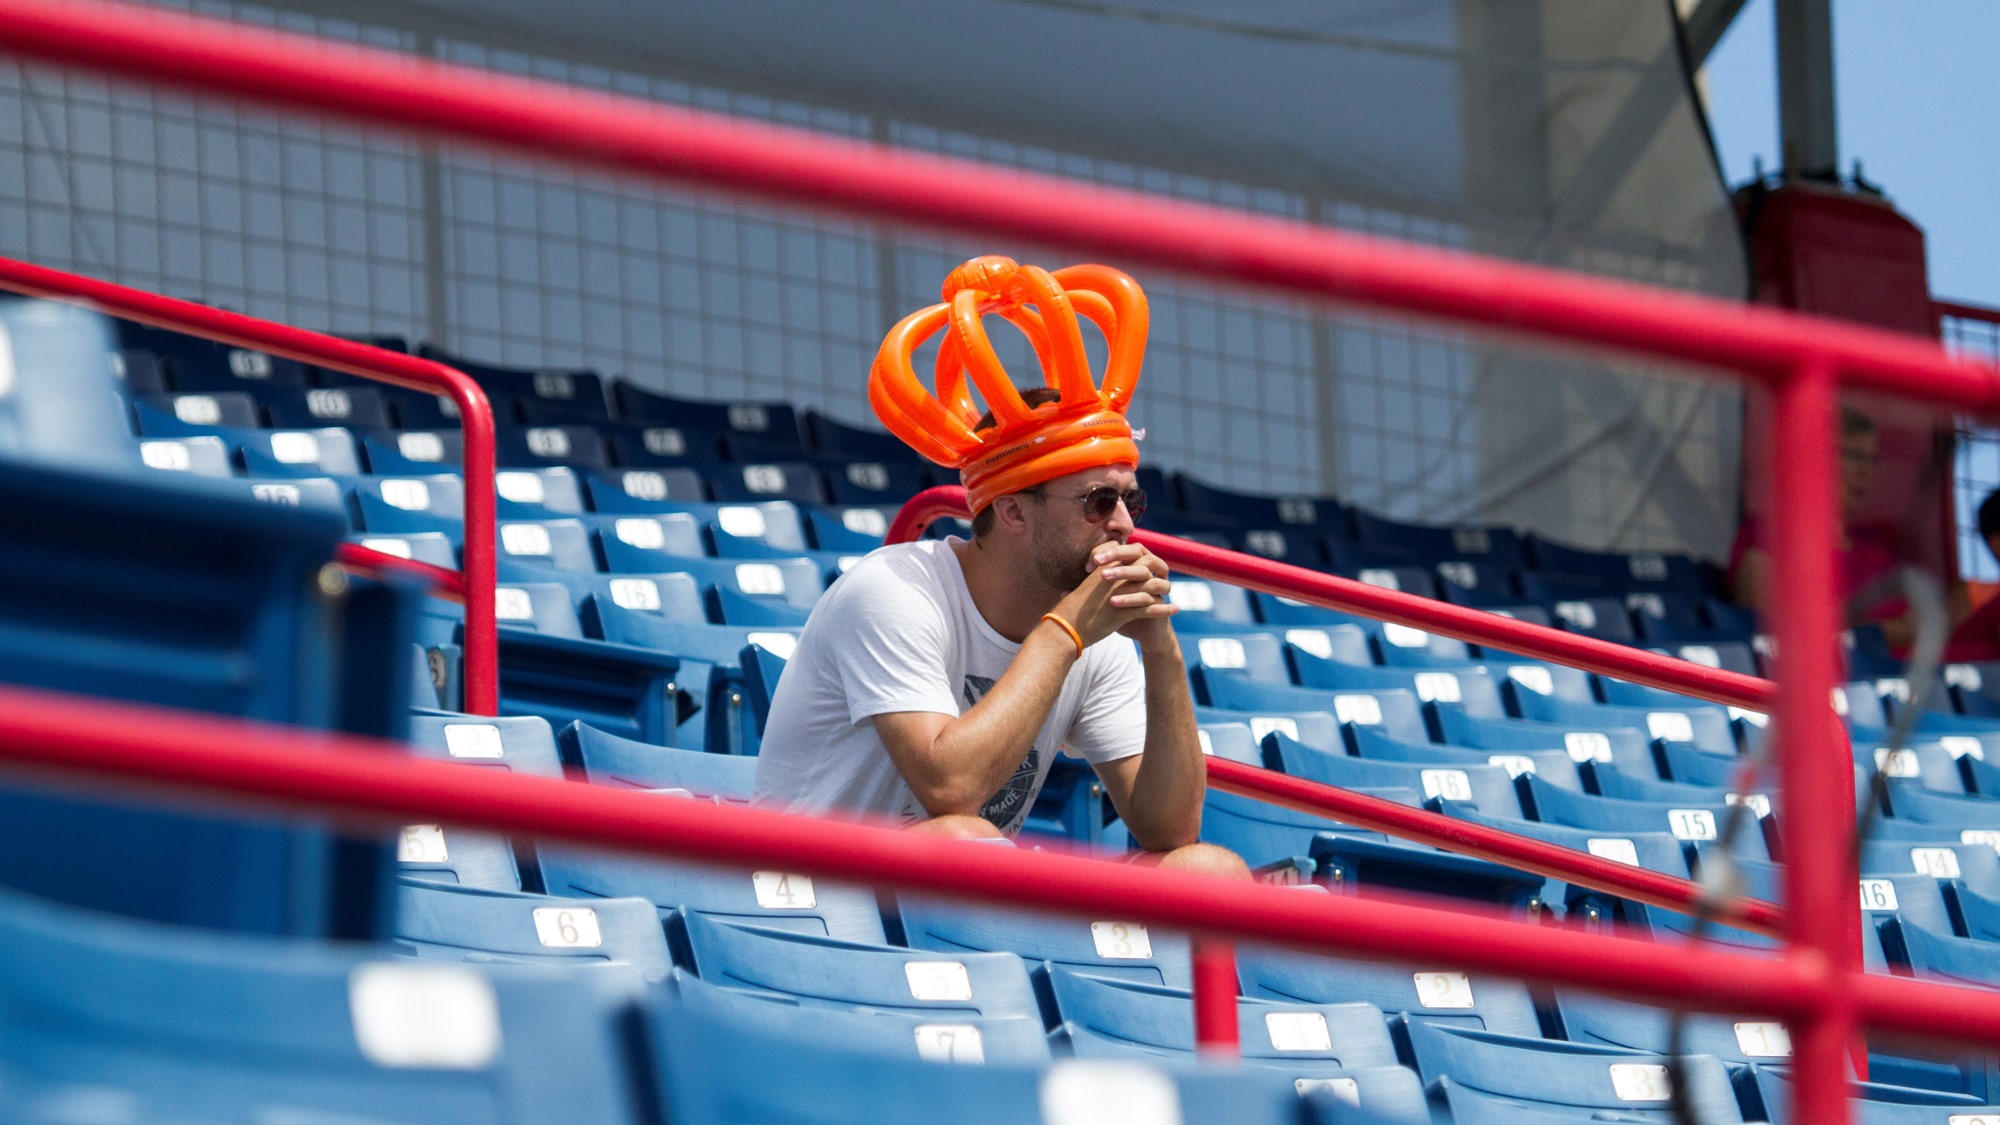 A lone Dutch fan on the standings